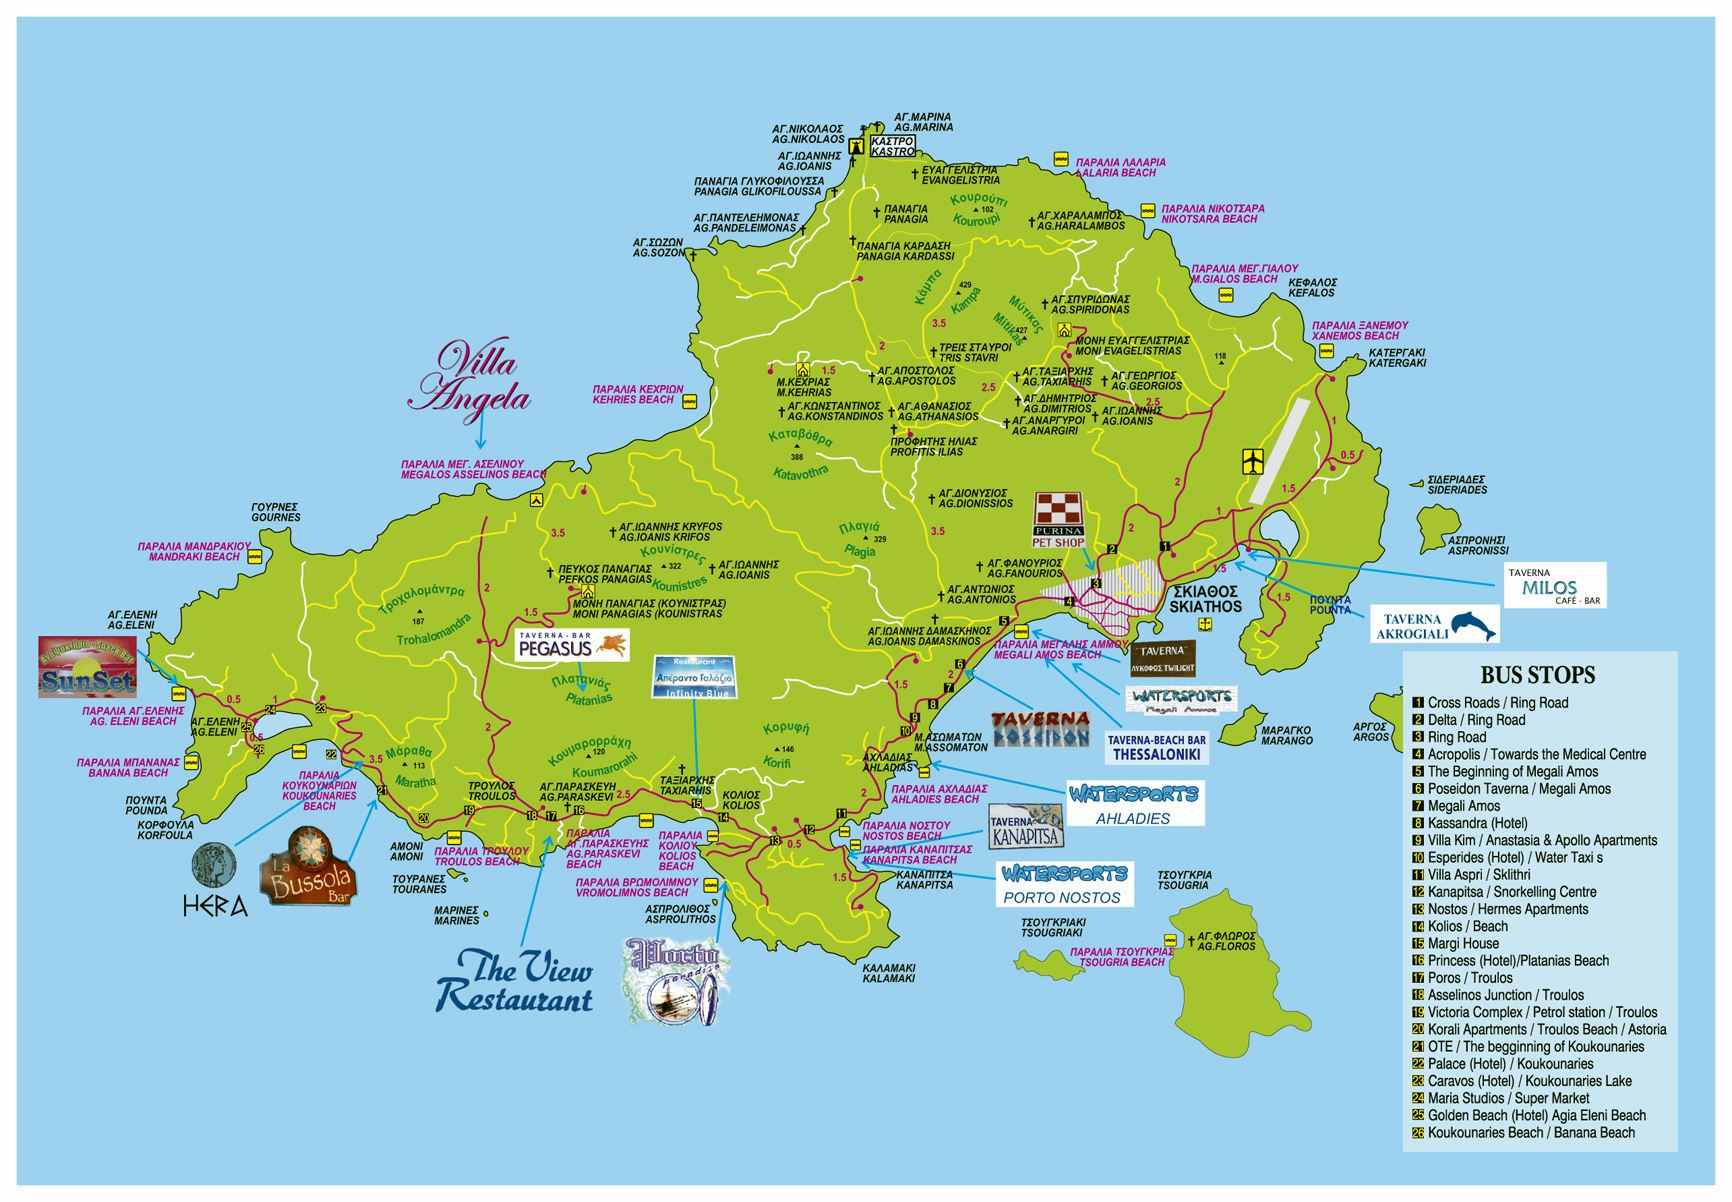 Map Of Skiathos Large Skiathos Island Maps for Free Download and Print | High